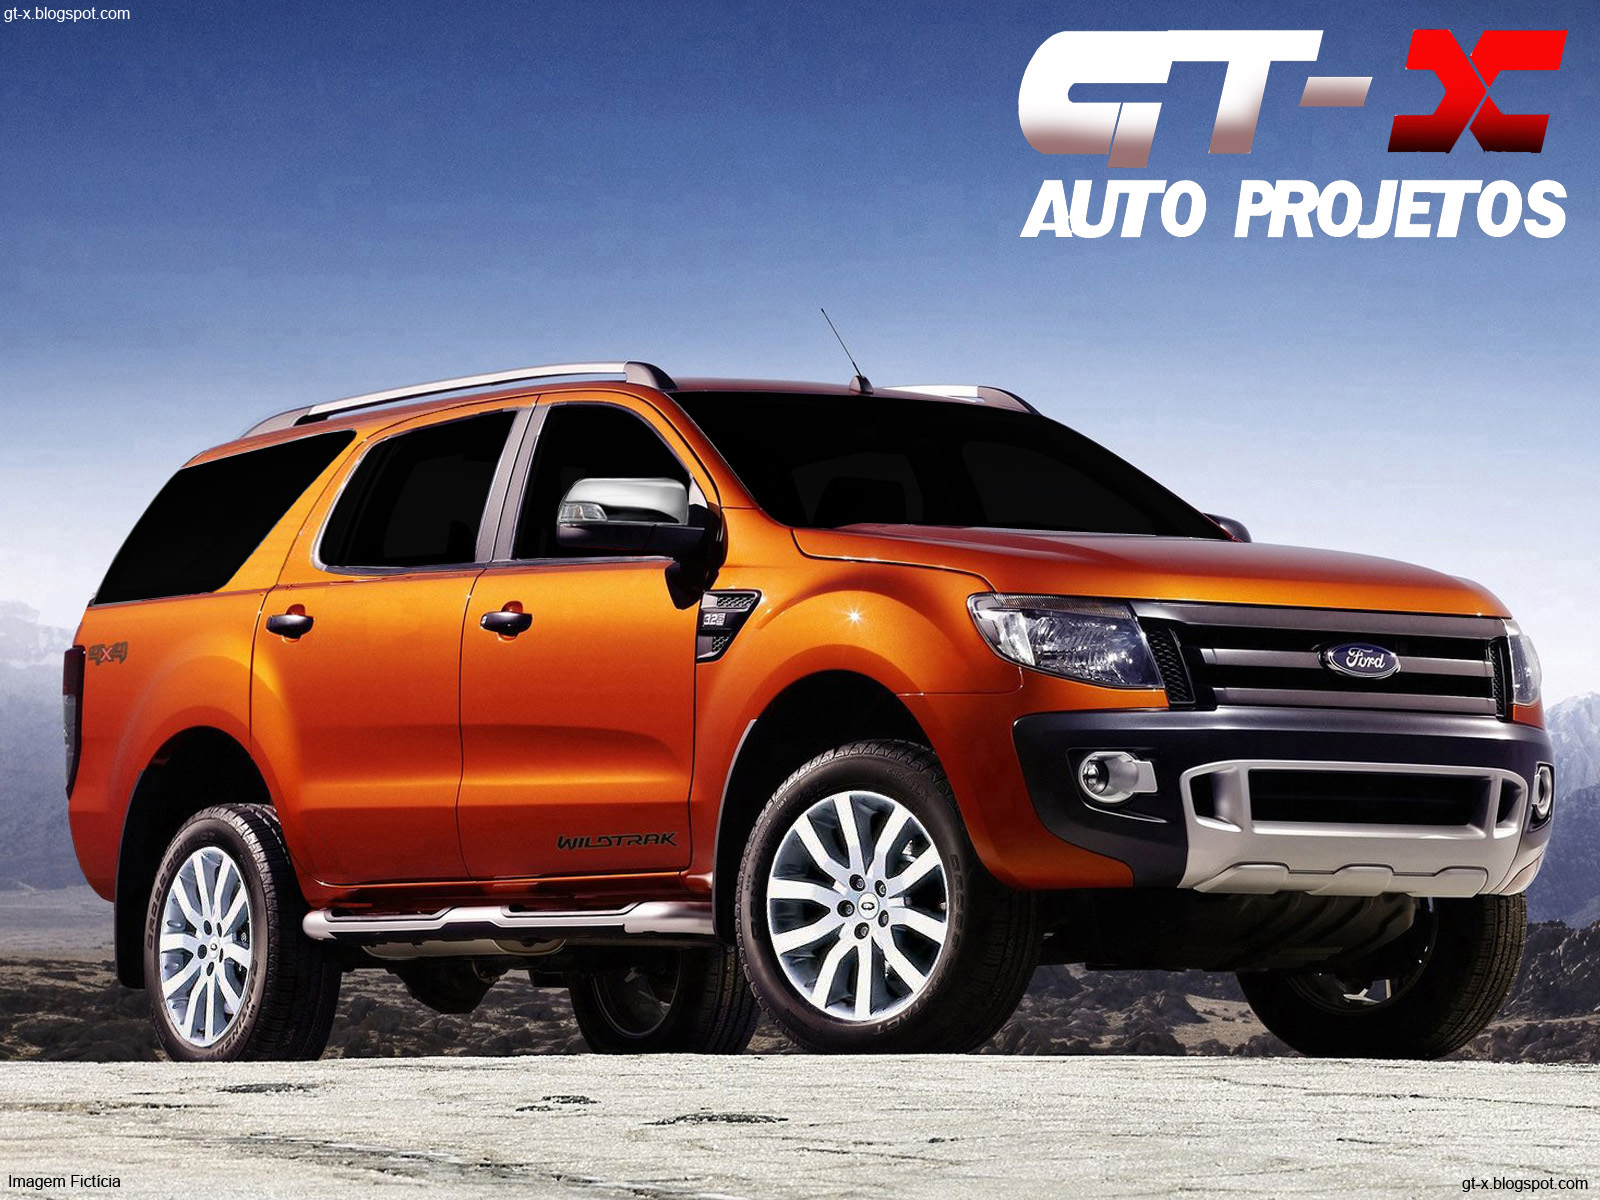 my favorite is the blue and orange one before ford ranger suv came out